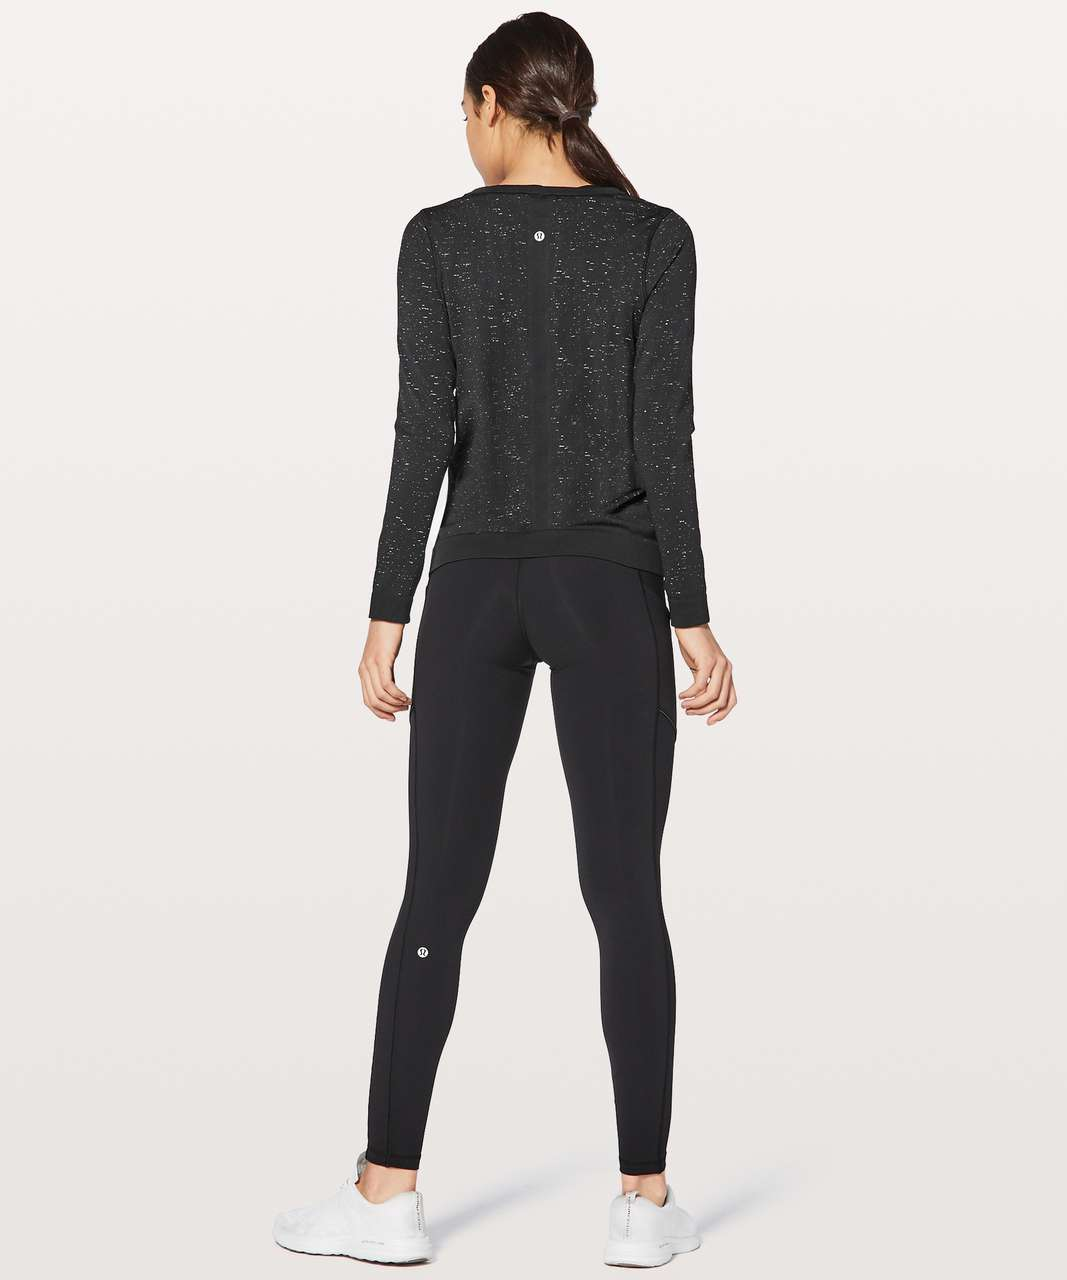 Lululemon Swiftly Tech Long Sleeve (Breeze) *Relaxed Fit - White / Black